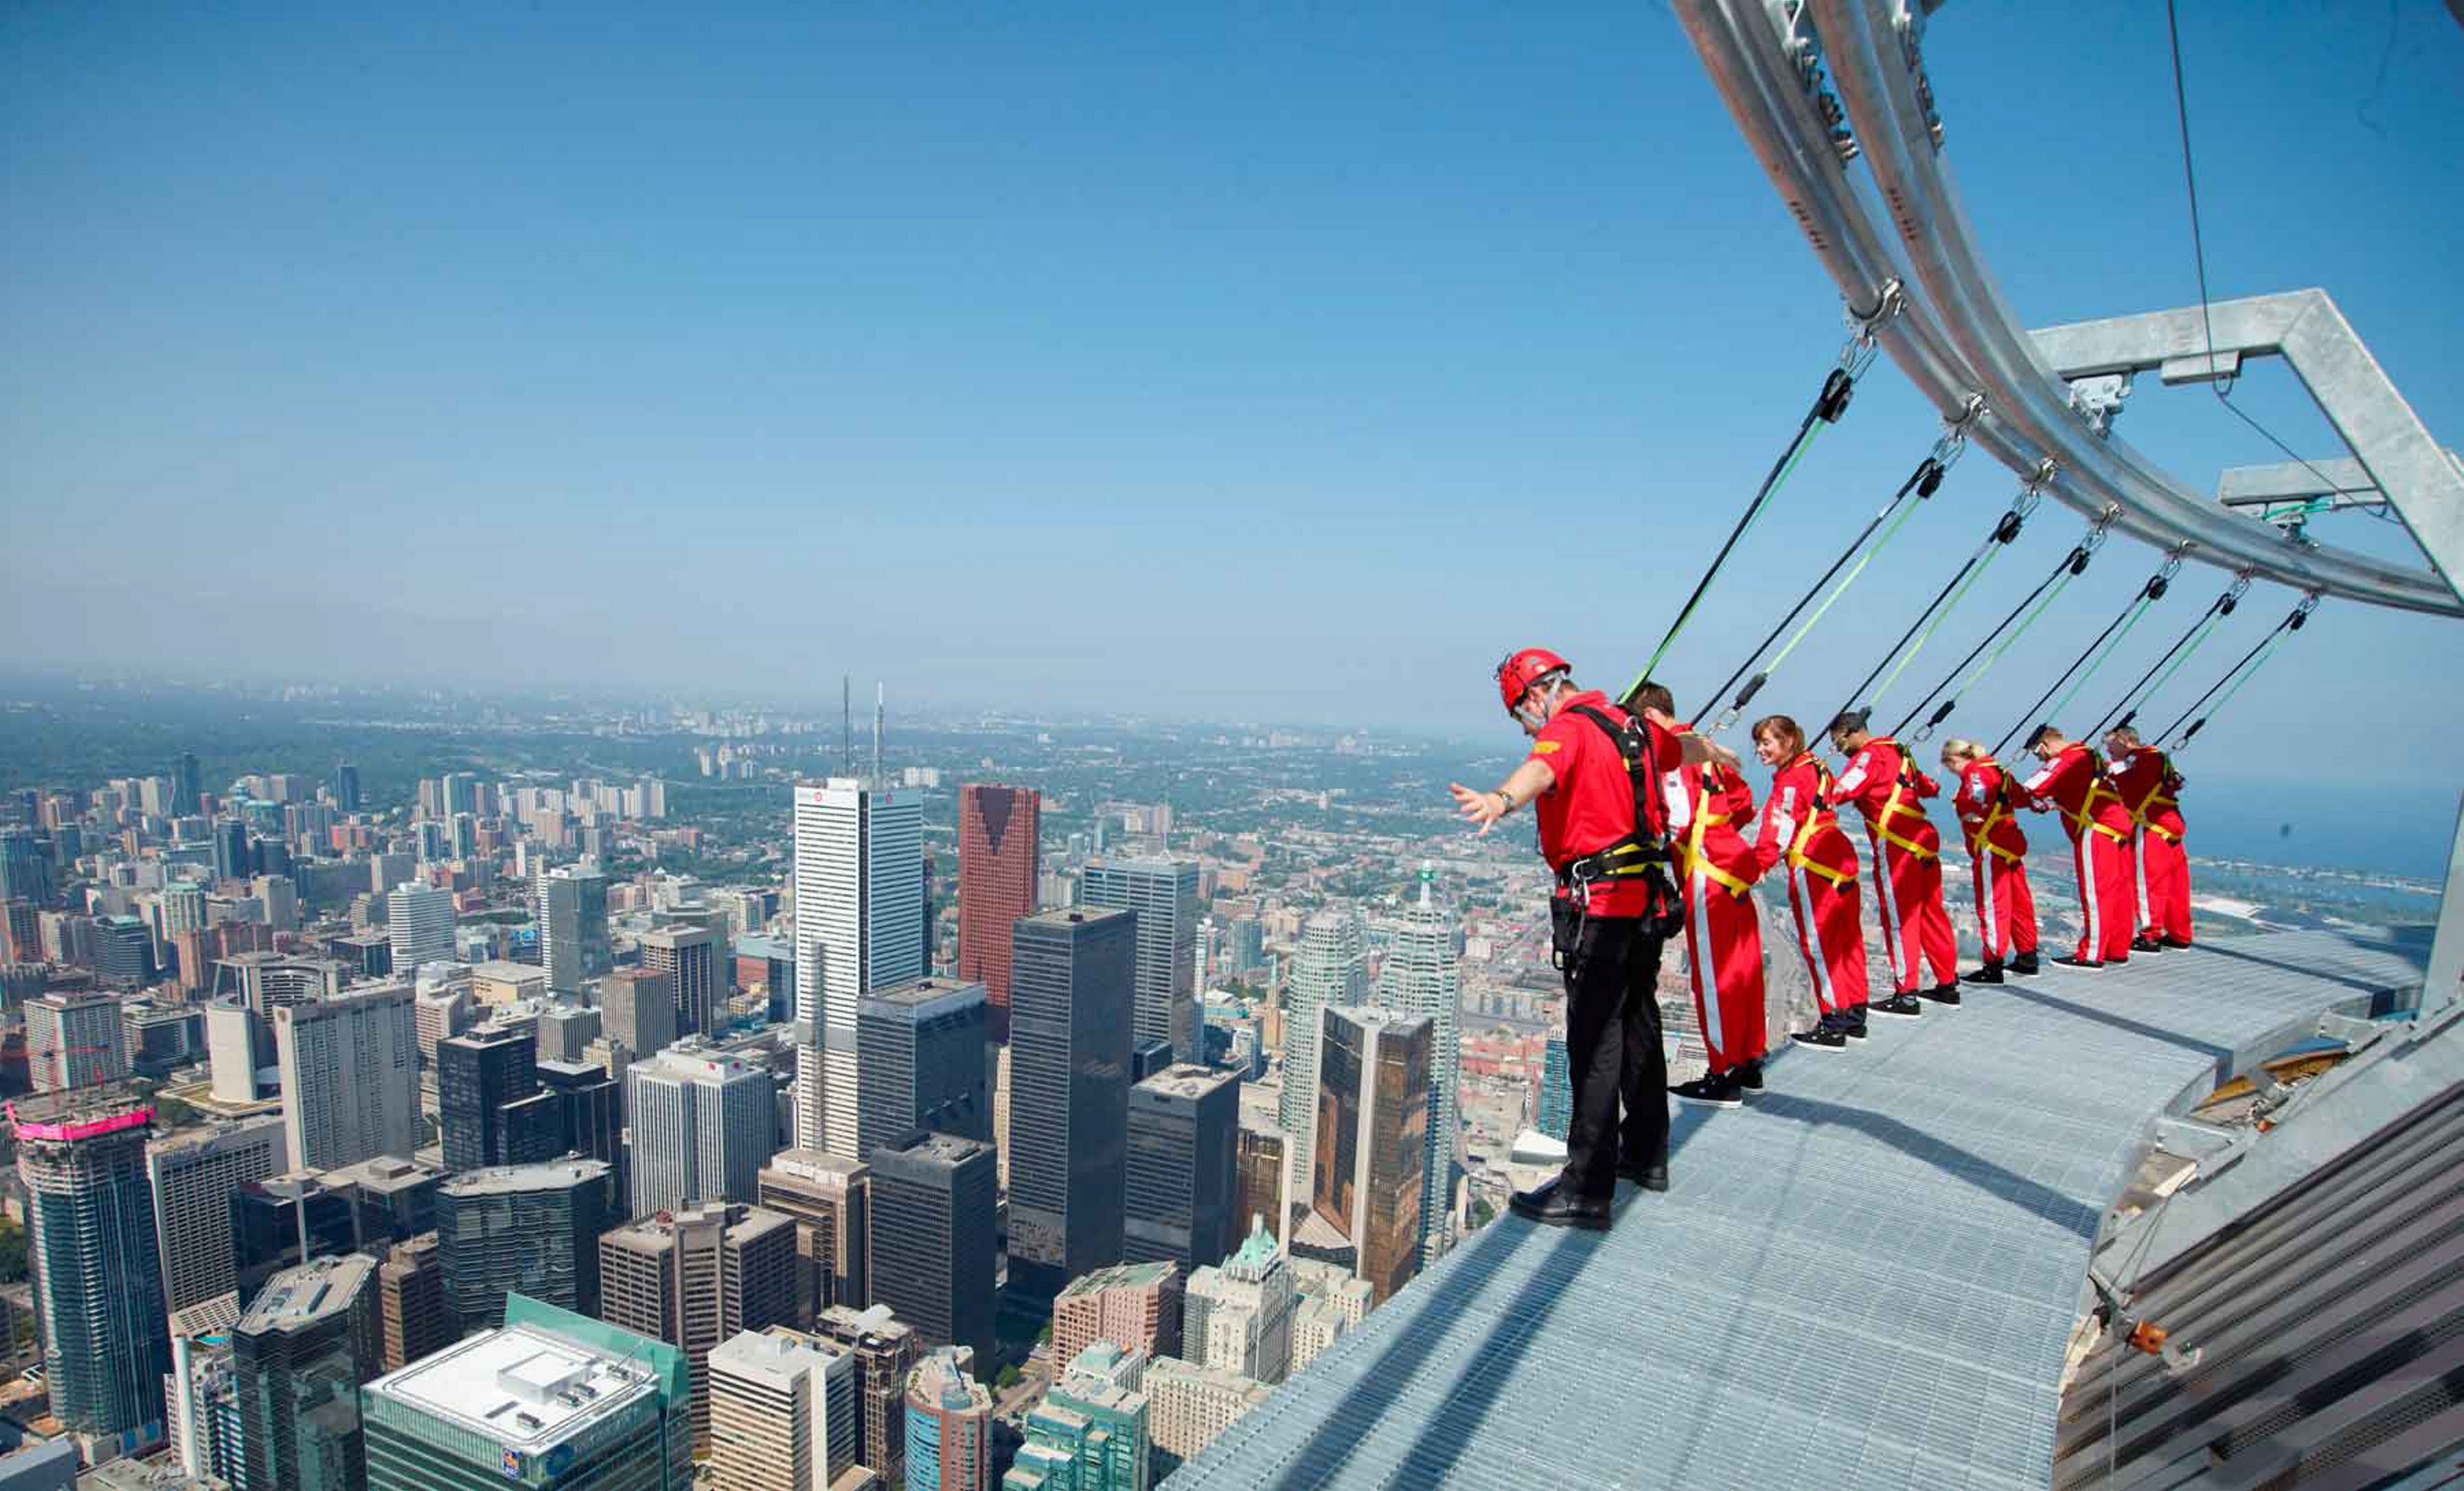 The EdgeWalk at the CN Tower in Toronto provides a unique – and exhilarating – view of the city.